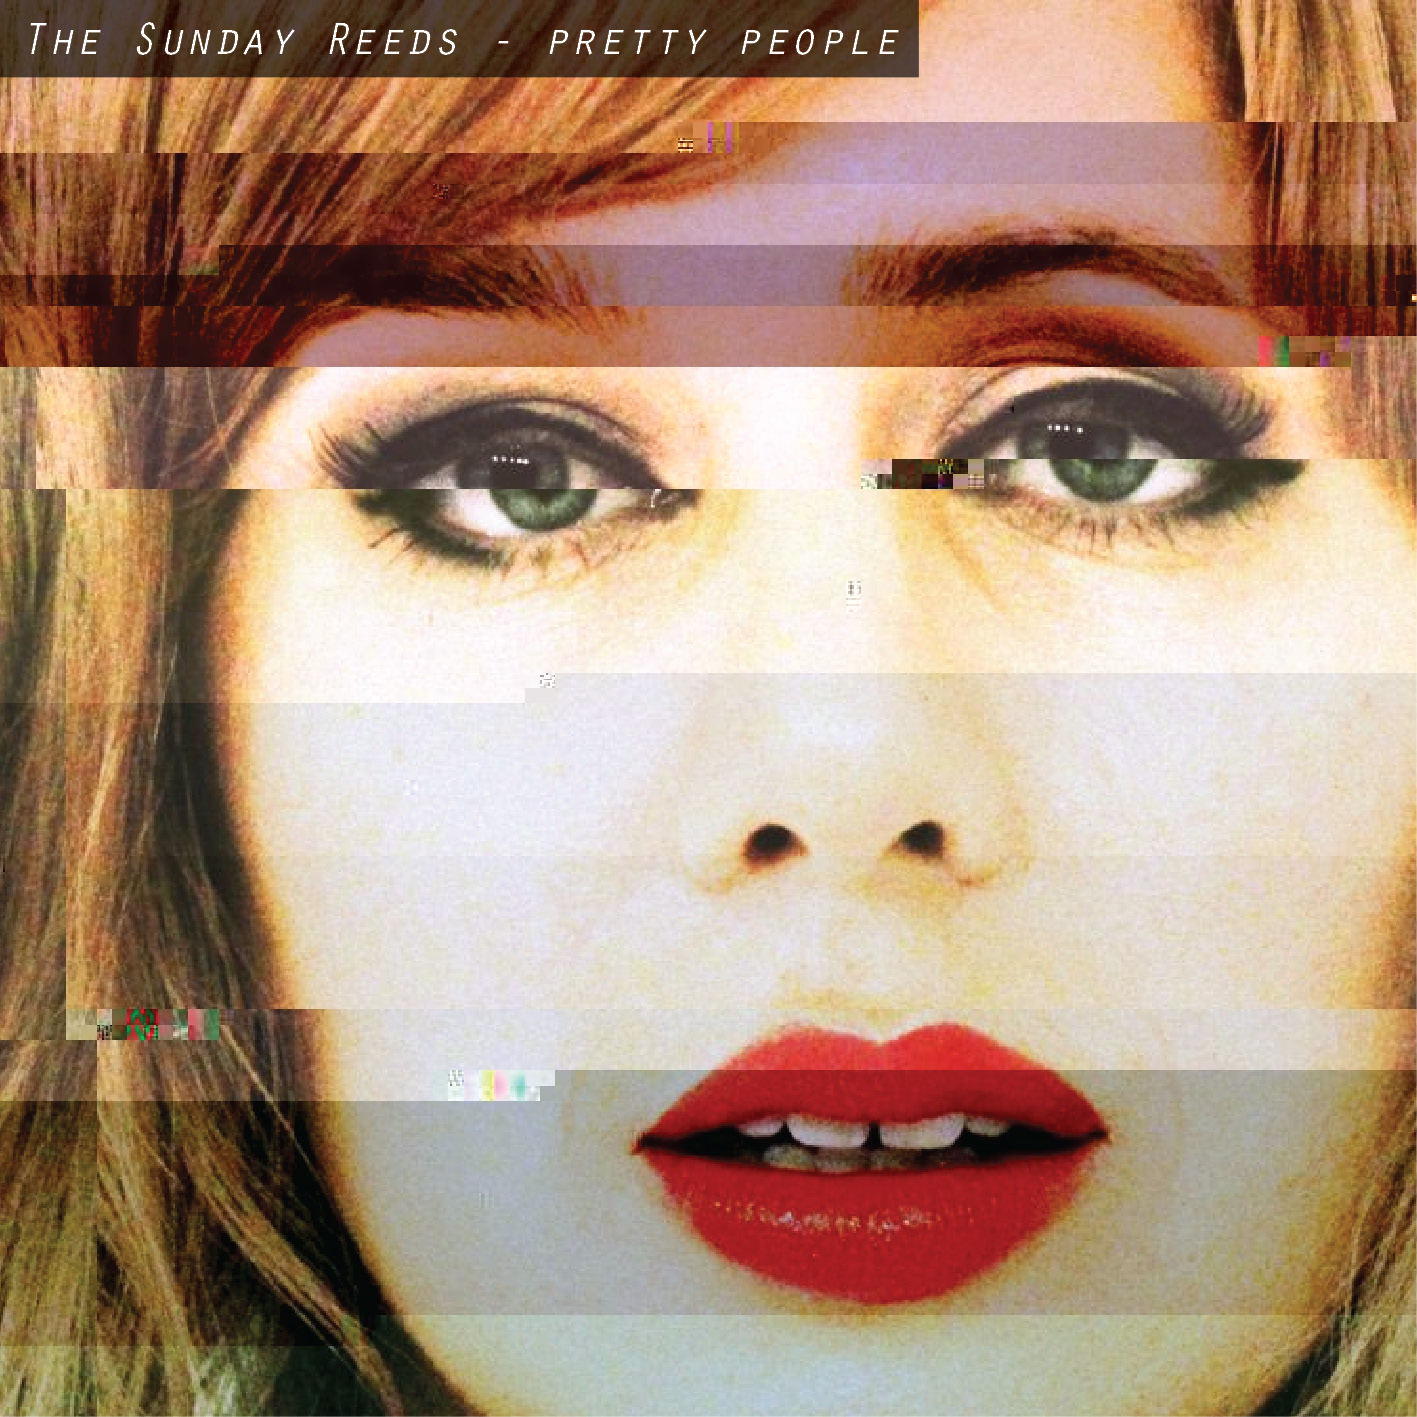 The Sunday Reeds - Pretty People